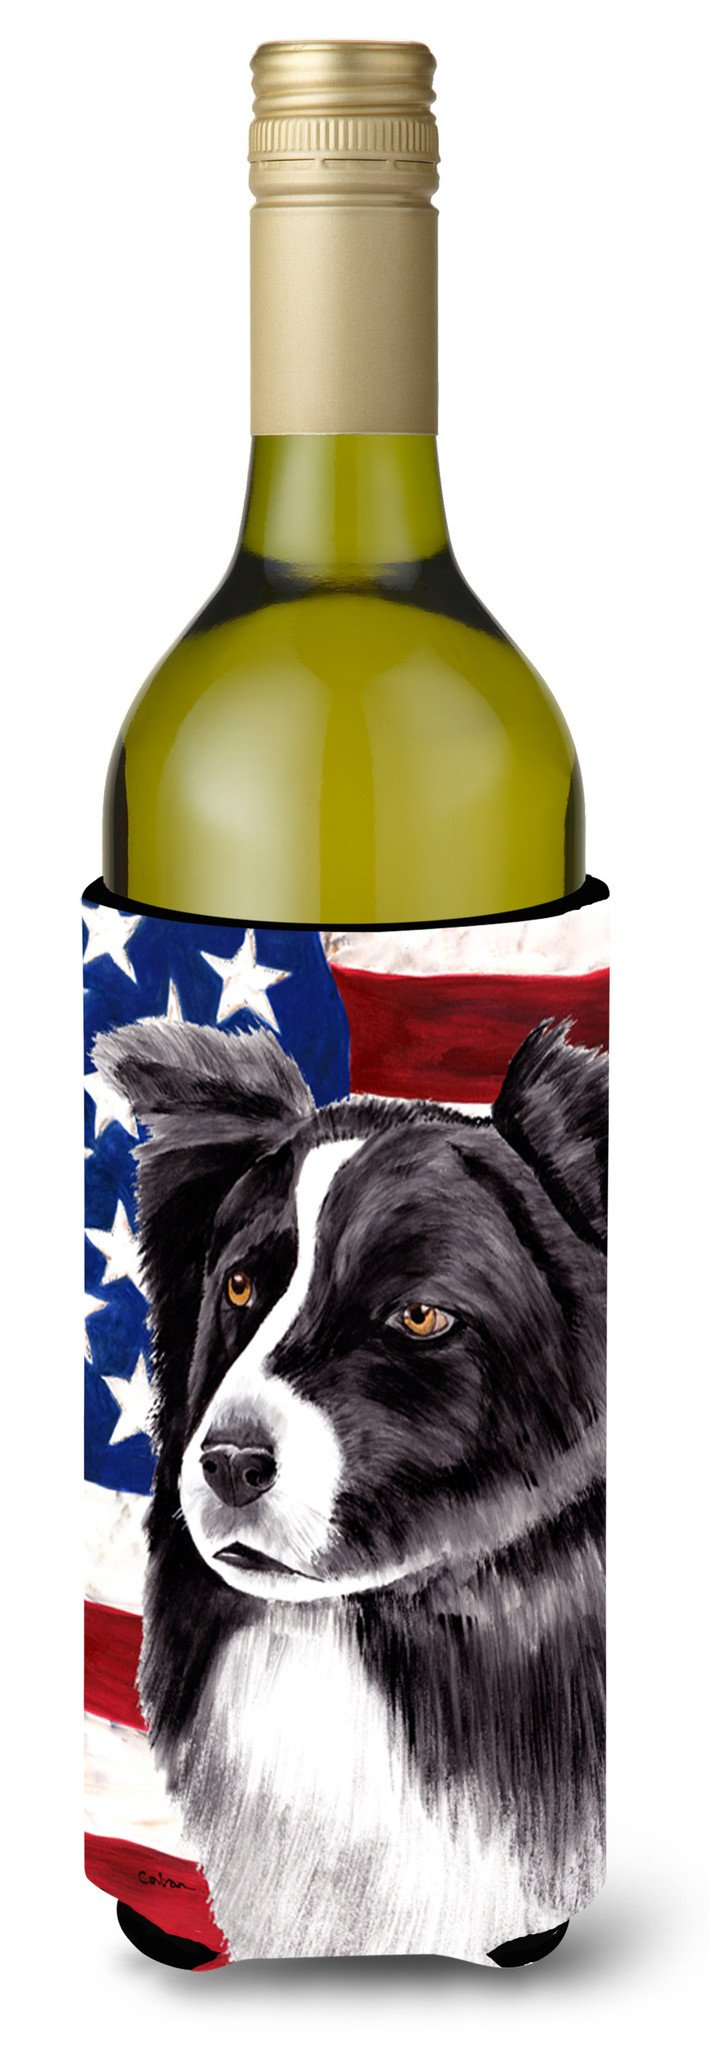 USA American Flag with Border Collie Wine Bottle Beverage Insulator Beverage Insulator Hugger by Caroline's Treasures